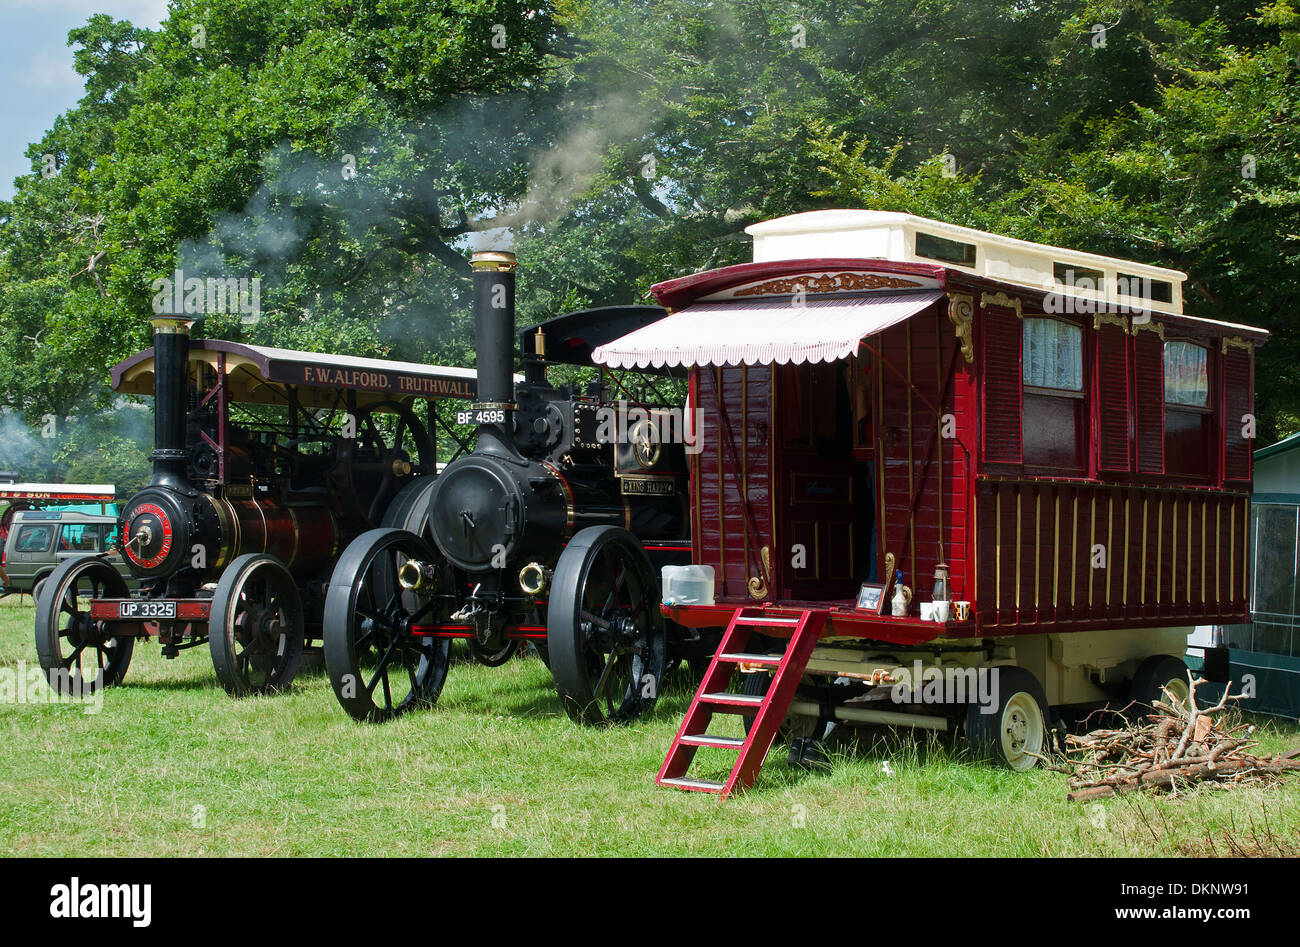 The annual steam engine rally at Boconnoc house in Cornwall, UK - Stock Image